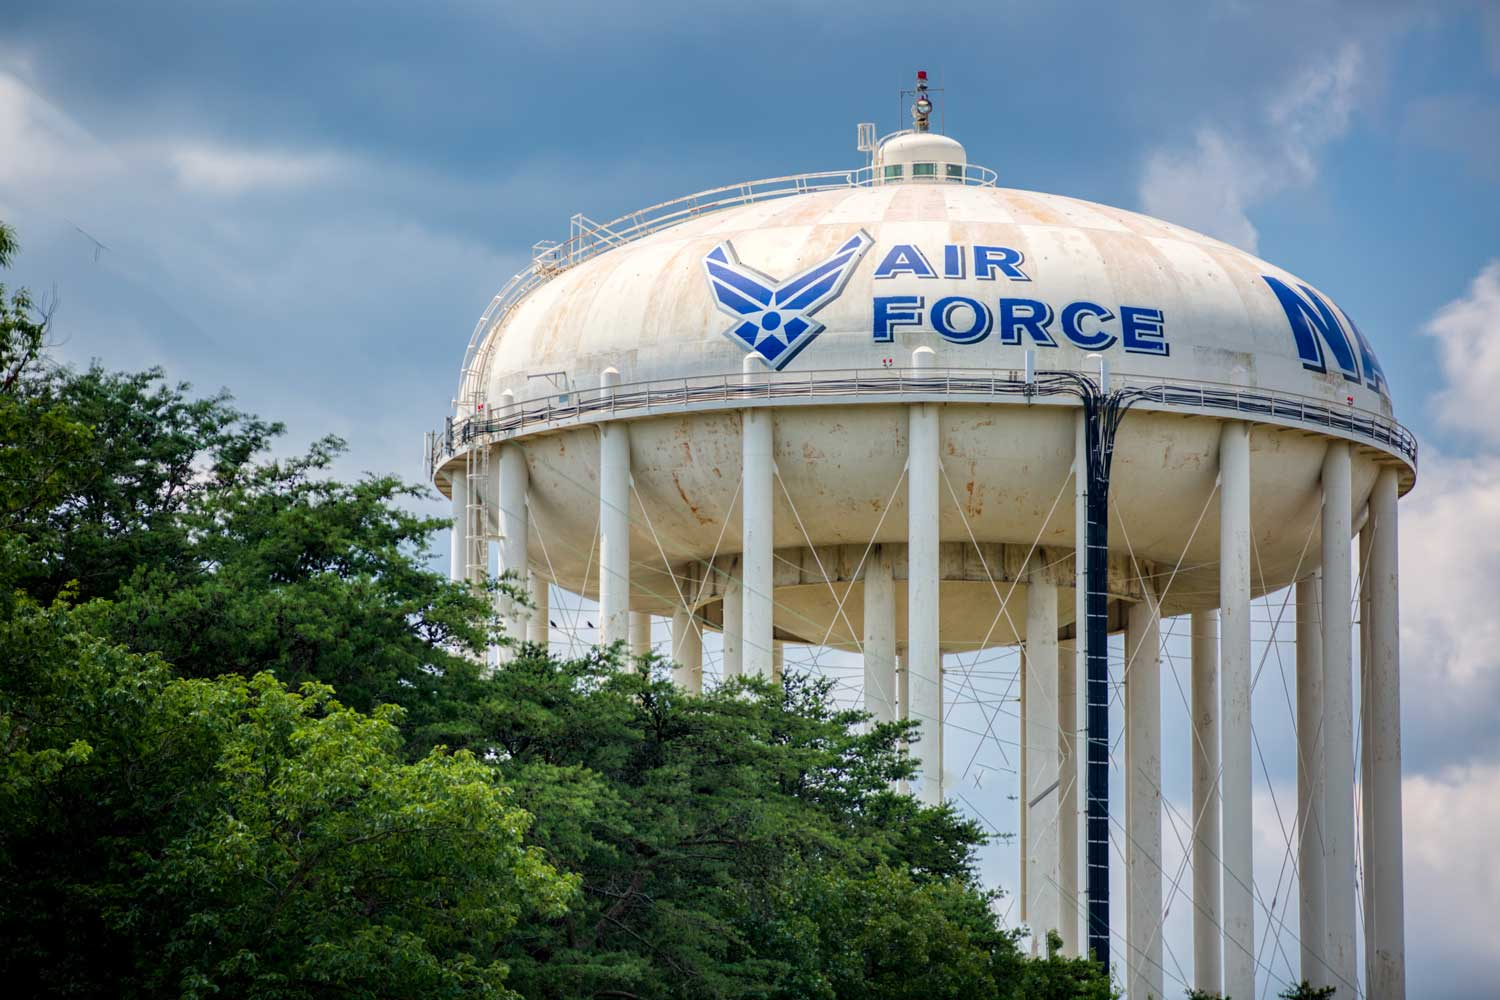 Joint Base Andrews is 10 minutes from Top of the Hill Apartments in Temple Hills, MD